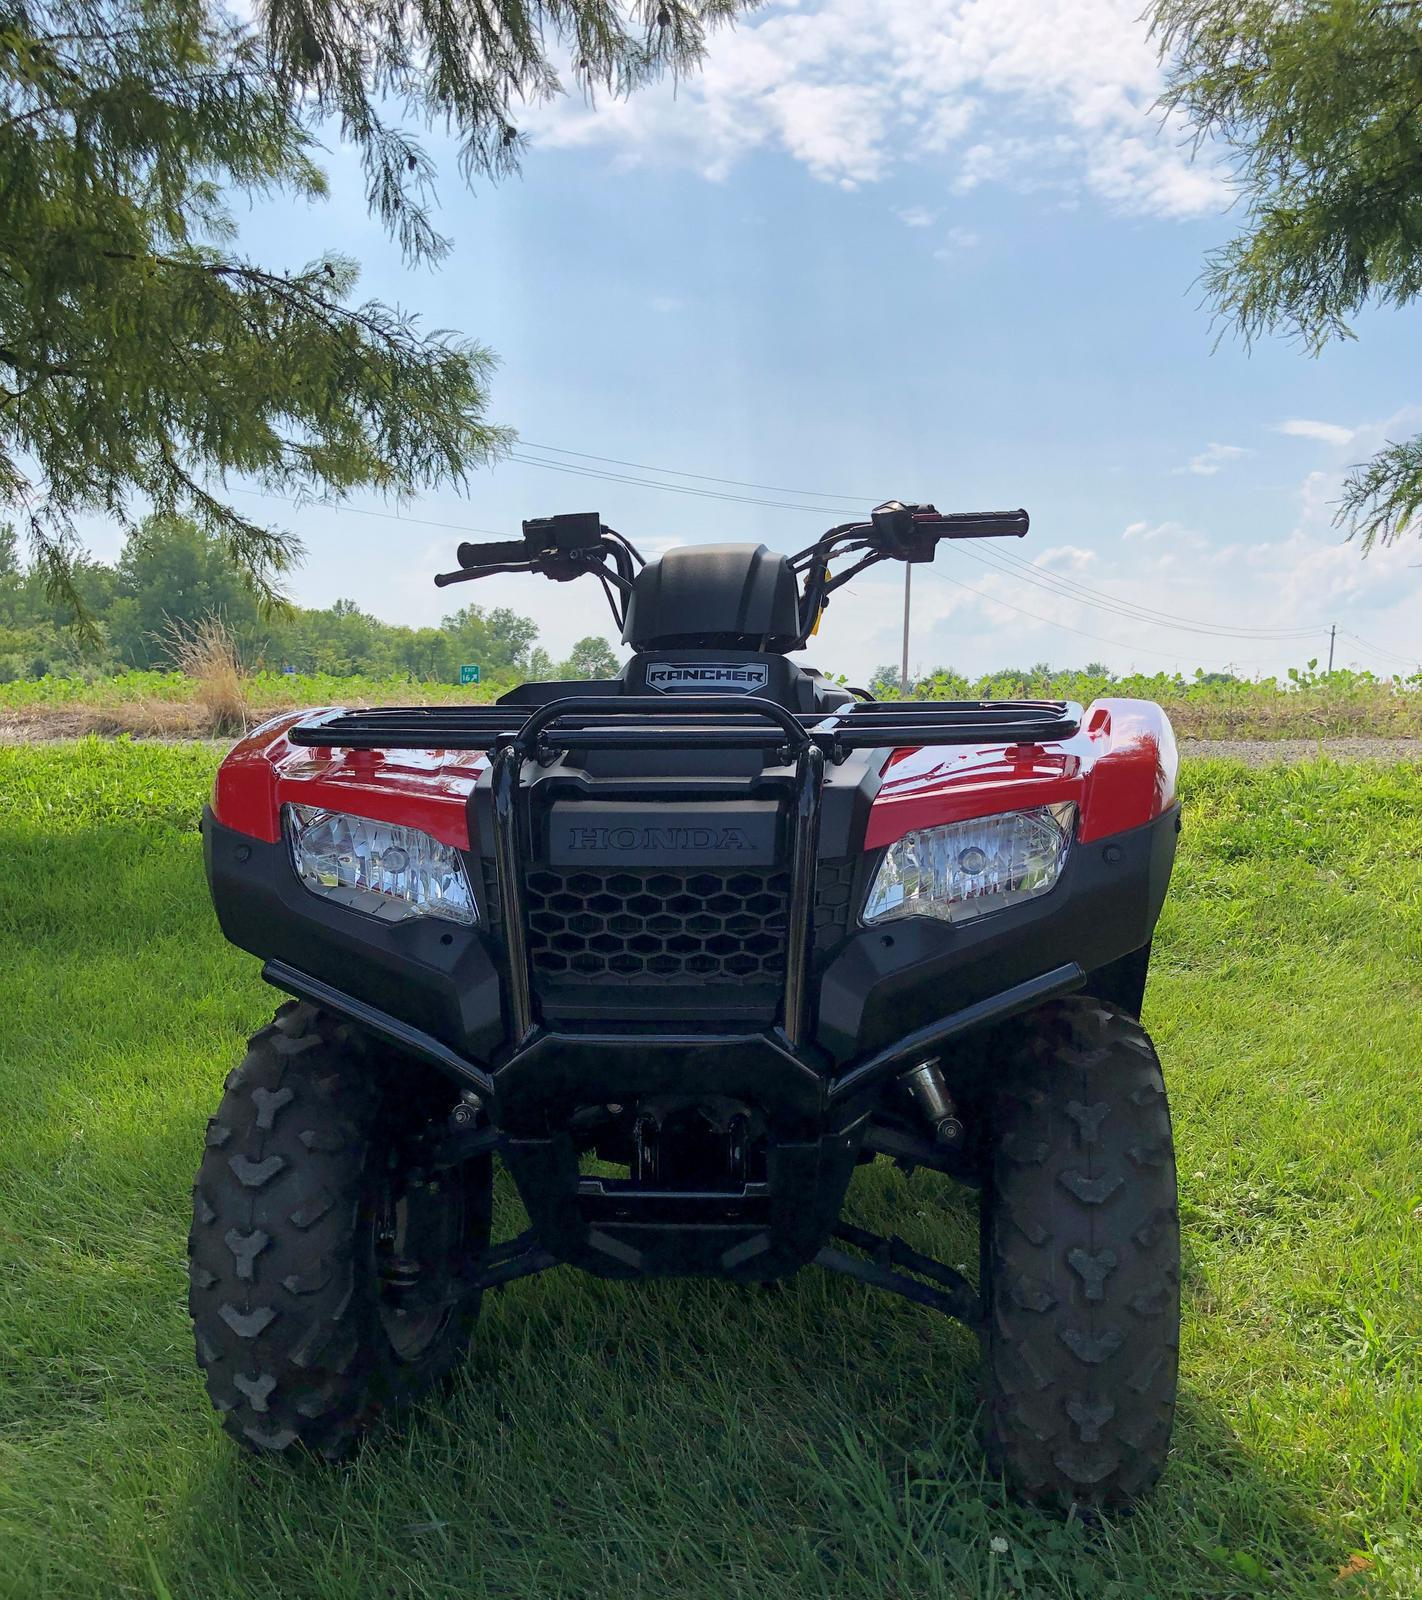 2017 Honda FourTrax Rancher for sale in Chesterfield, MO  St